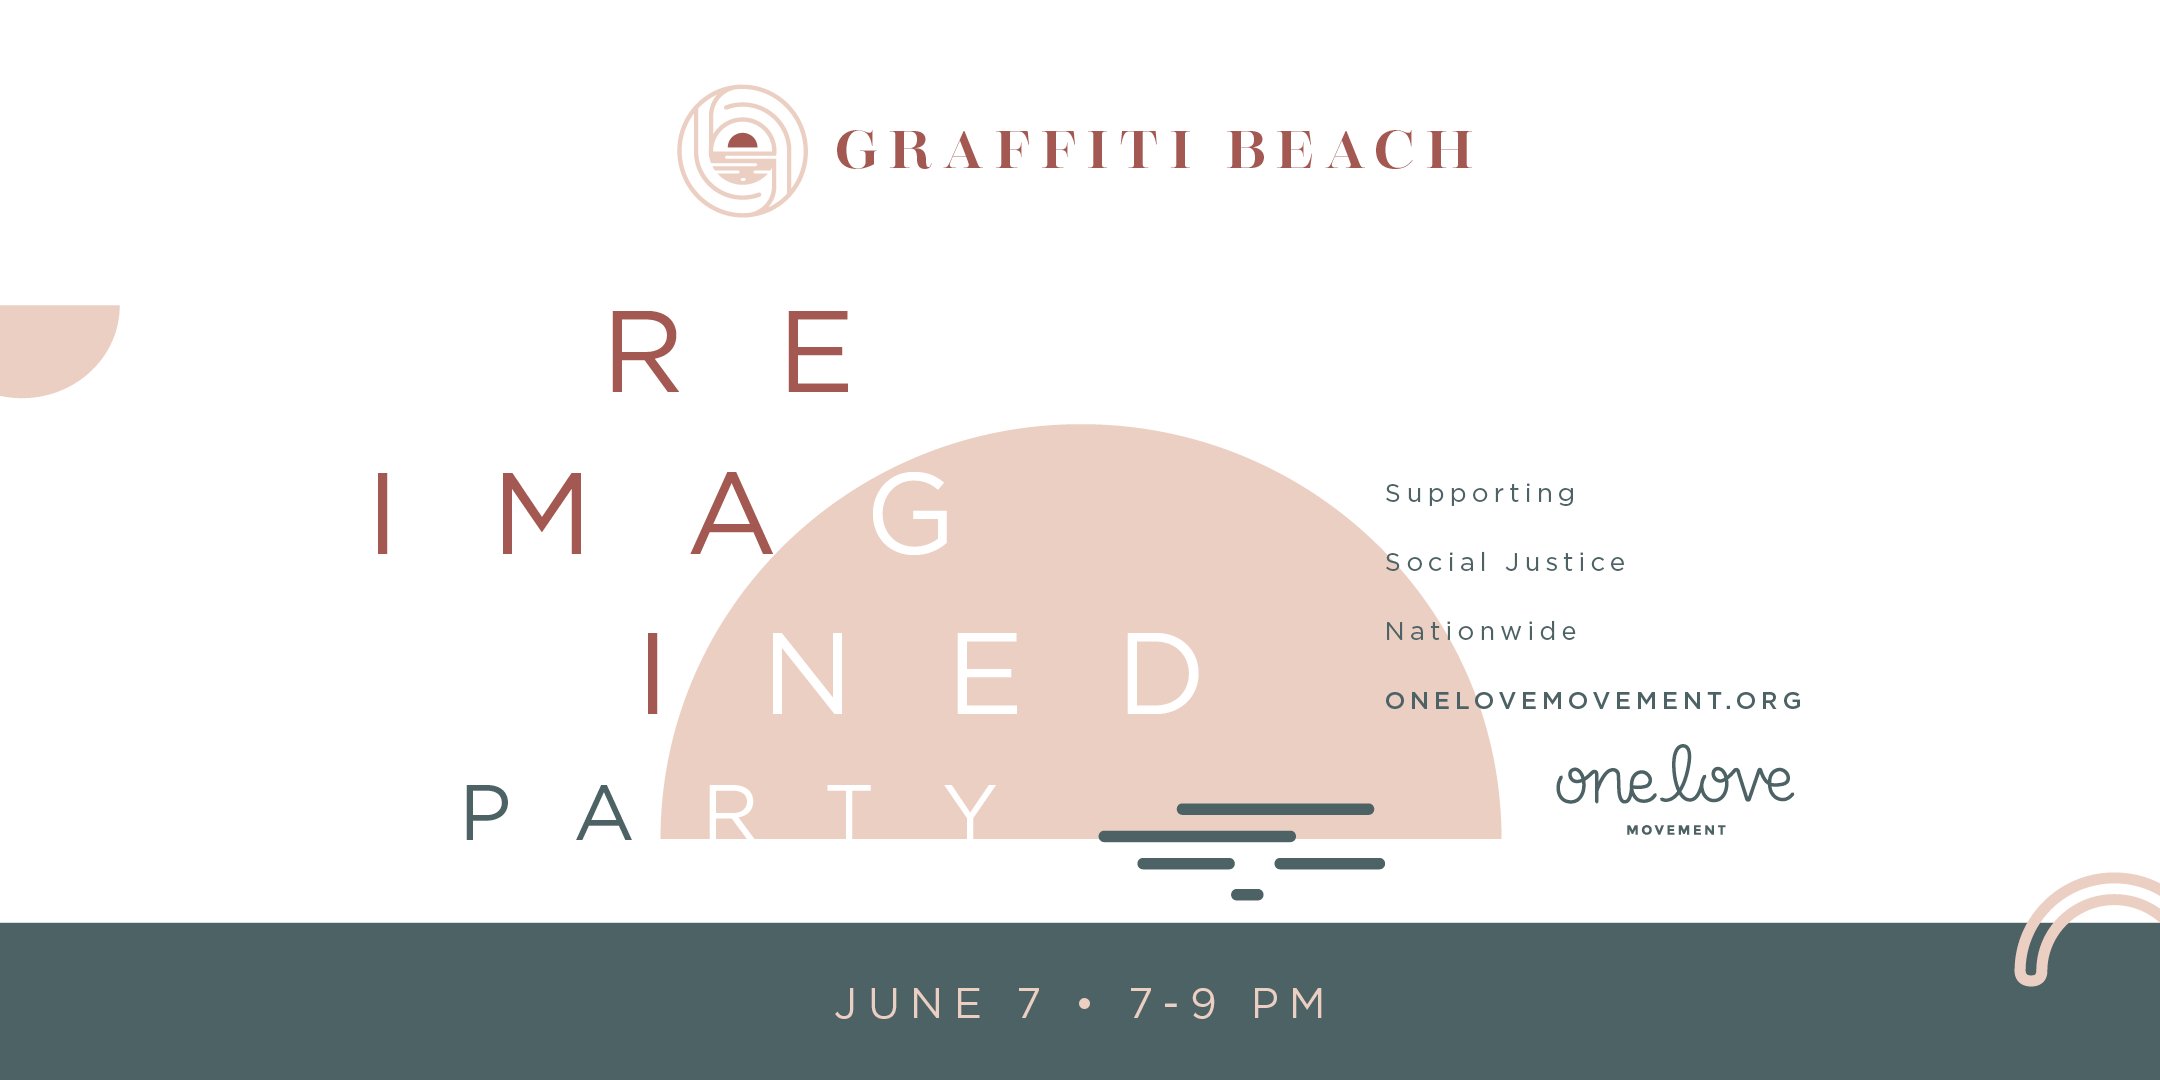 Graffiti Beach's ReImagined Party with One Love Movement